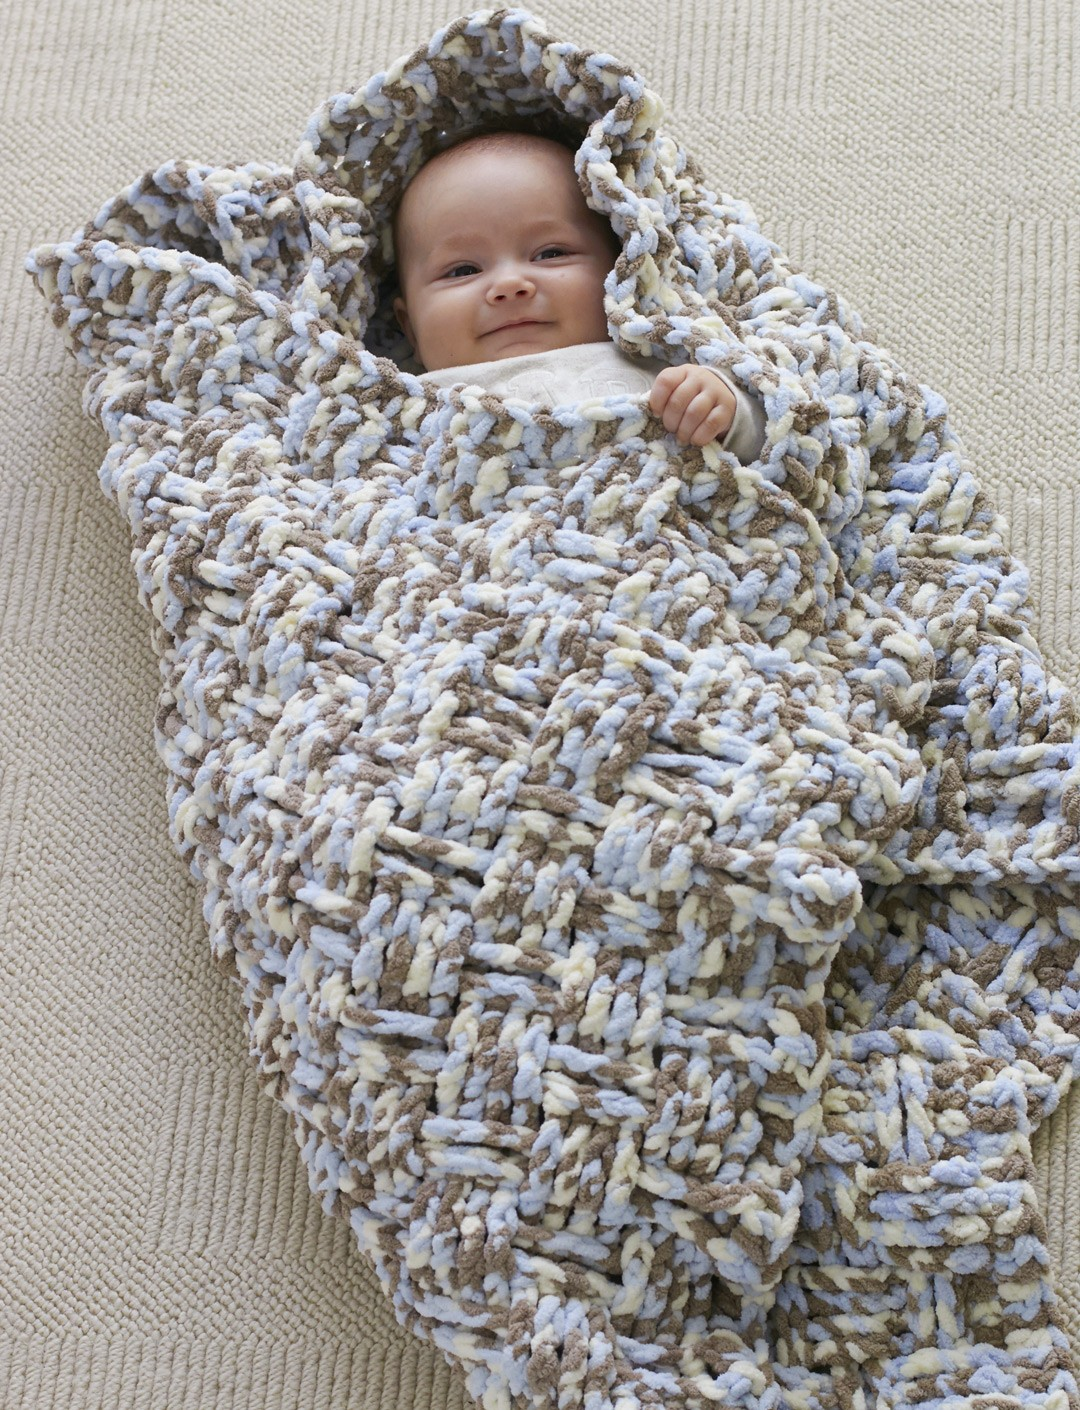 Bernat Dream Weaver Blanket, Crochet Pattern Yarnspirations